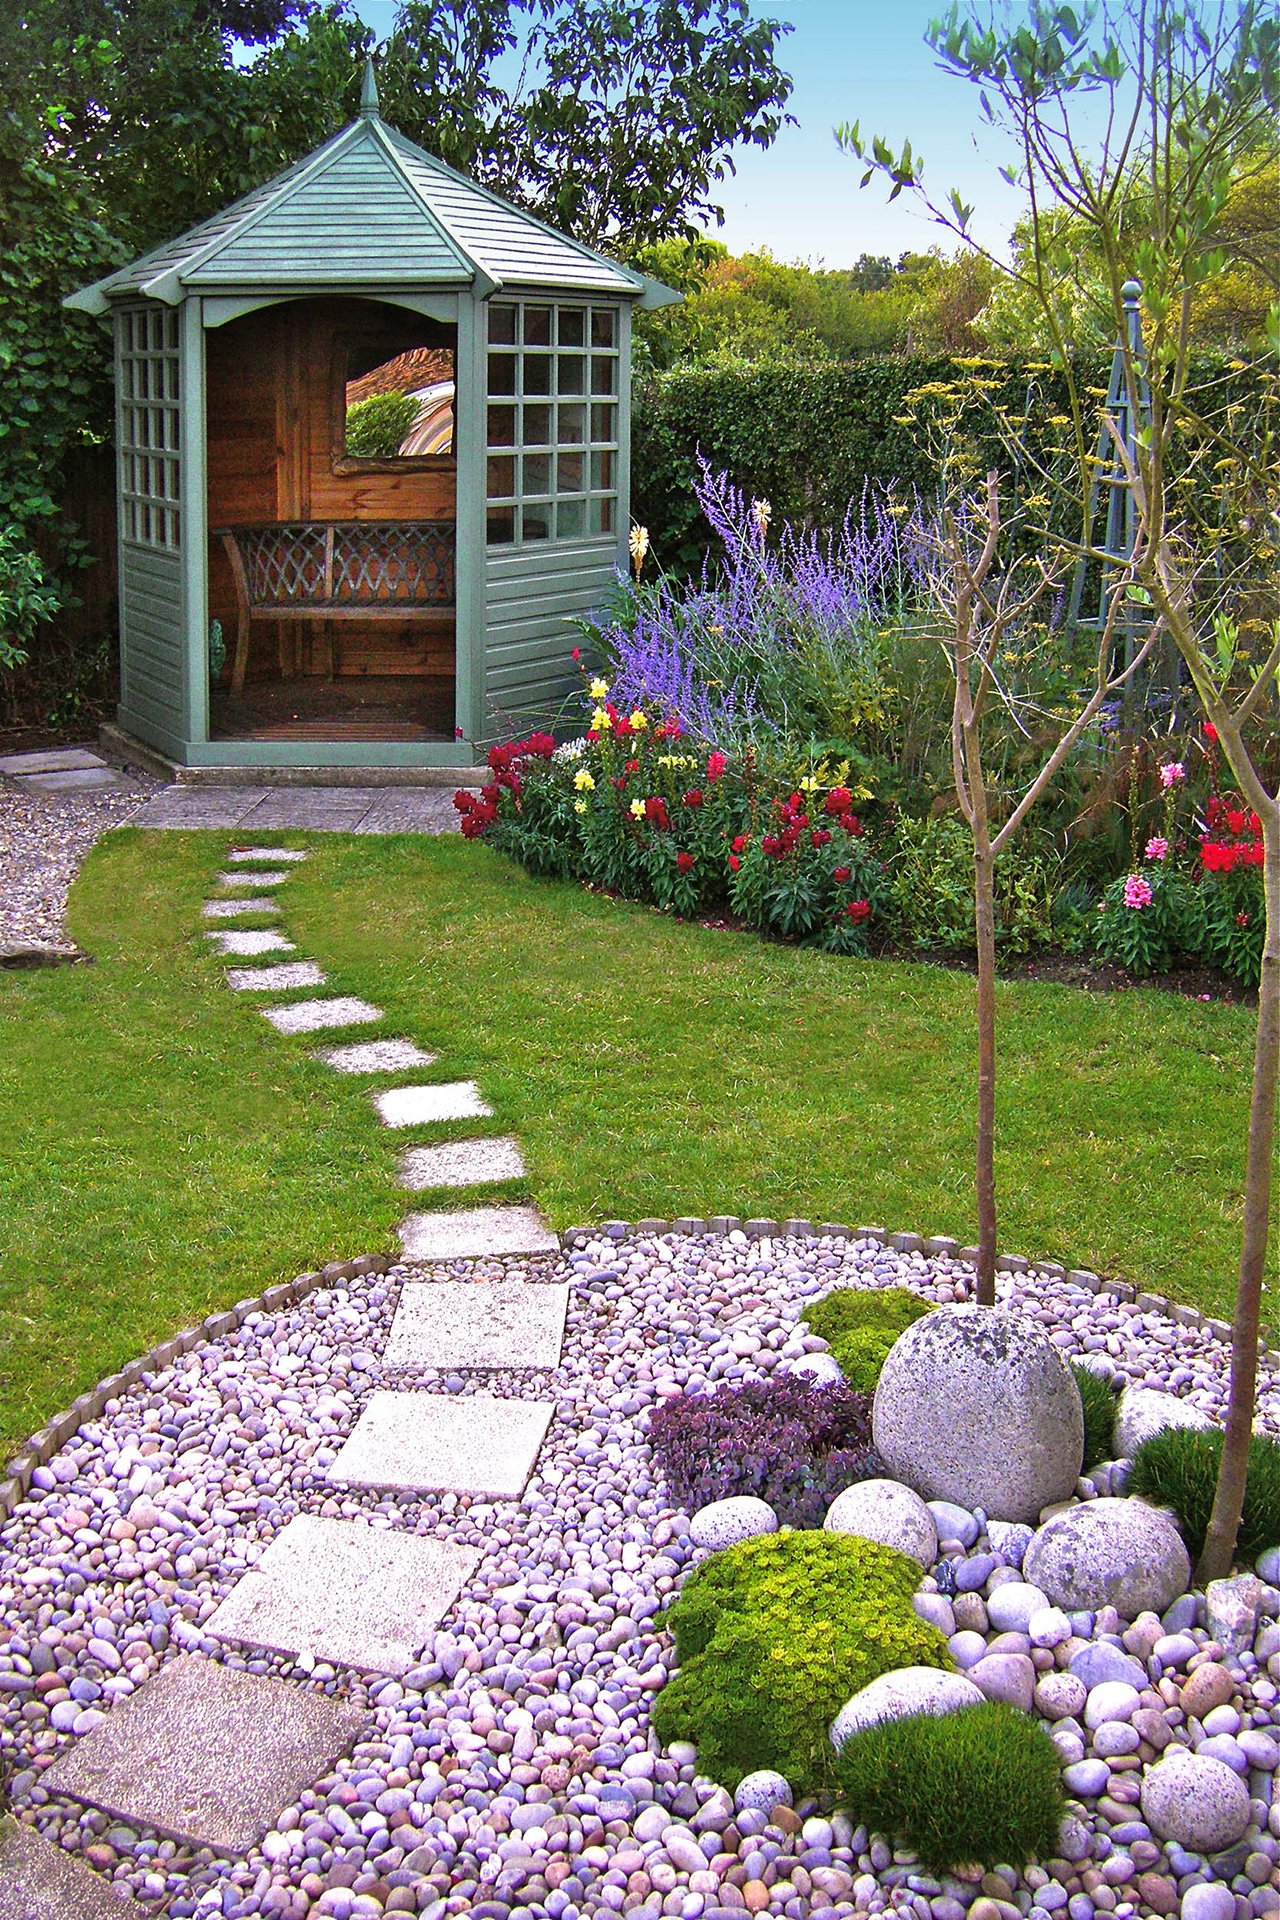 50 Best Backyard Landscaping Ideas And Designs In 2019 intended for 12 Genius Initiatives of How to Make How To Plan Backyard Landscaping